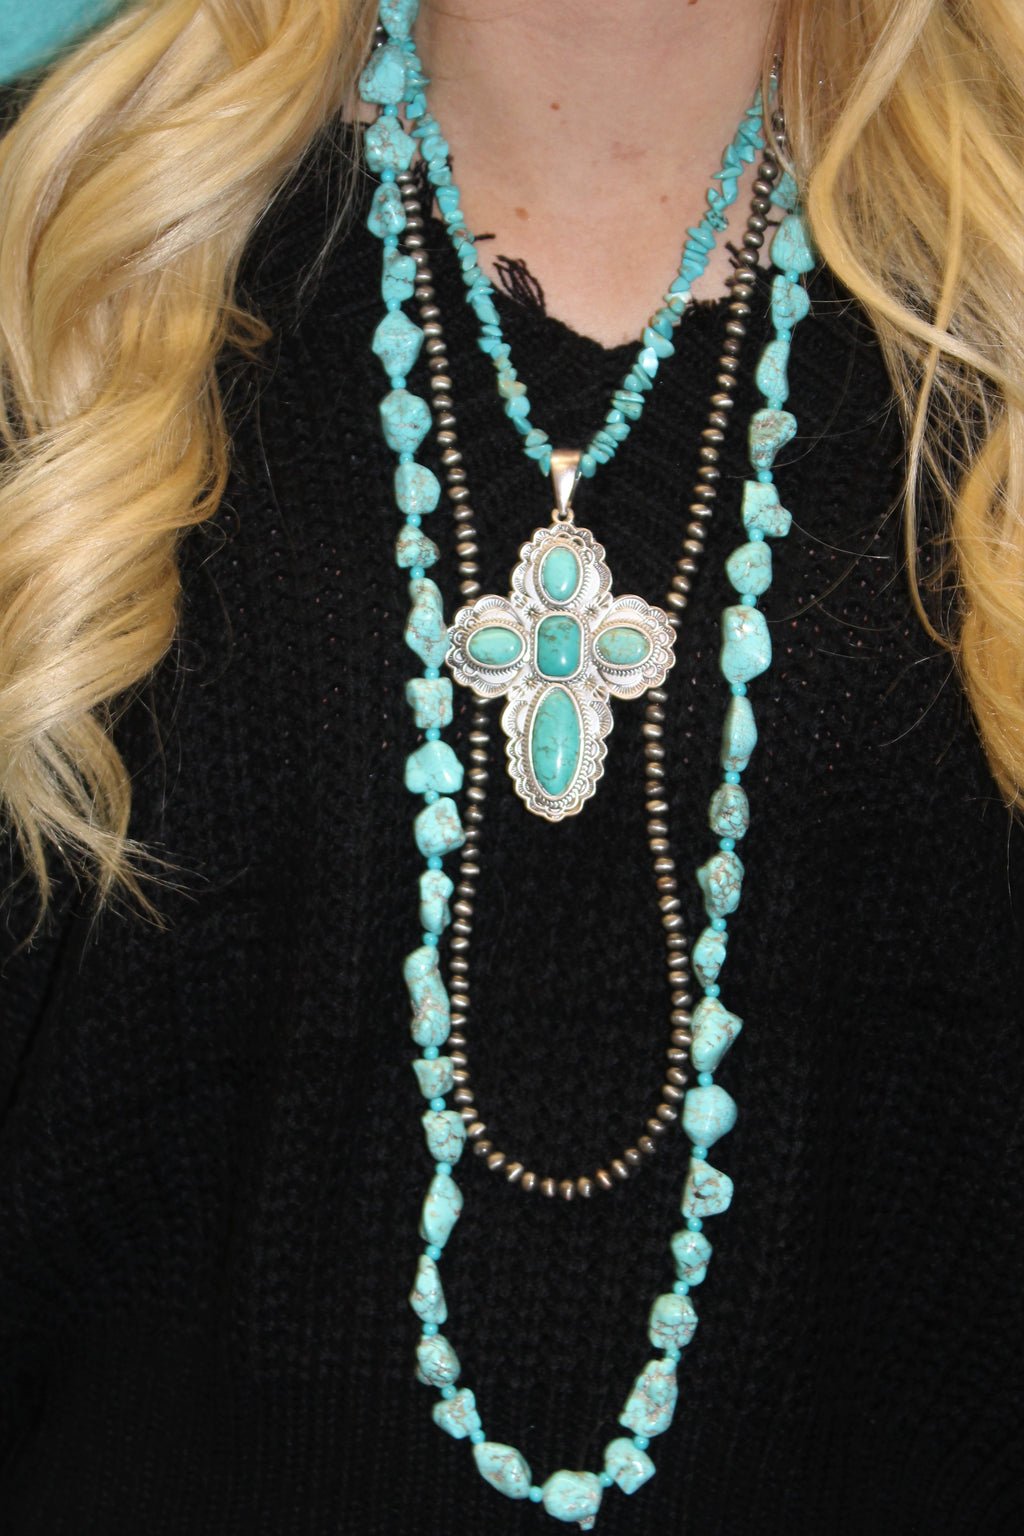 Turquoise, Faith, and Strength Necklace